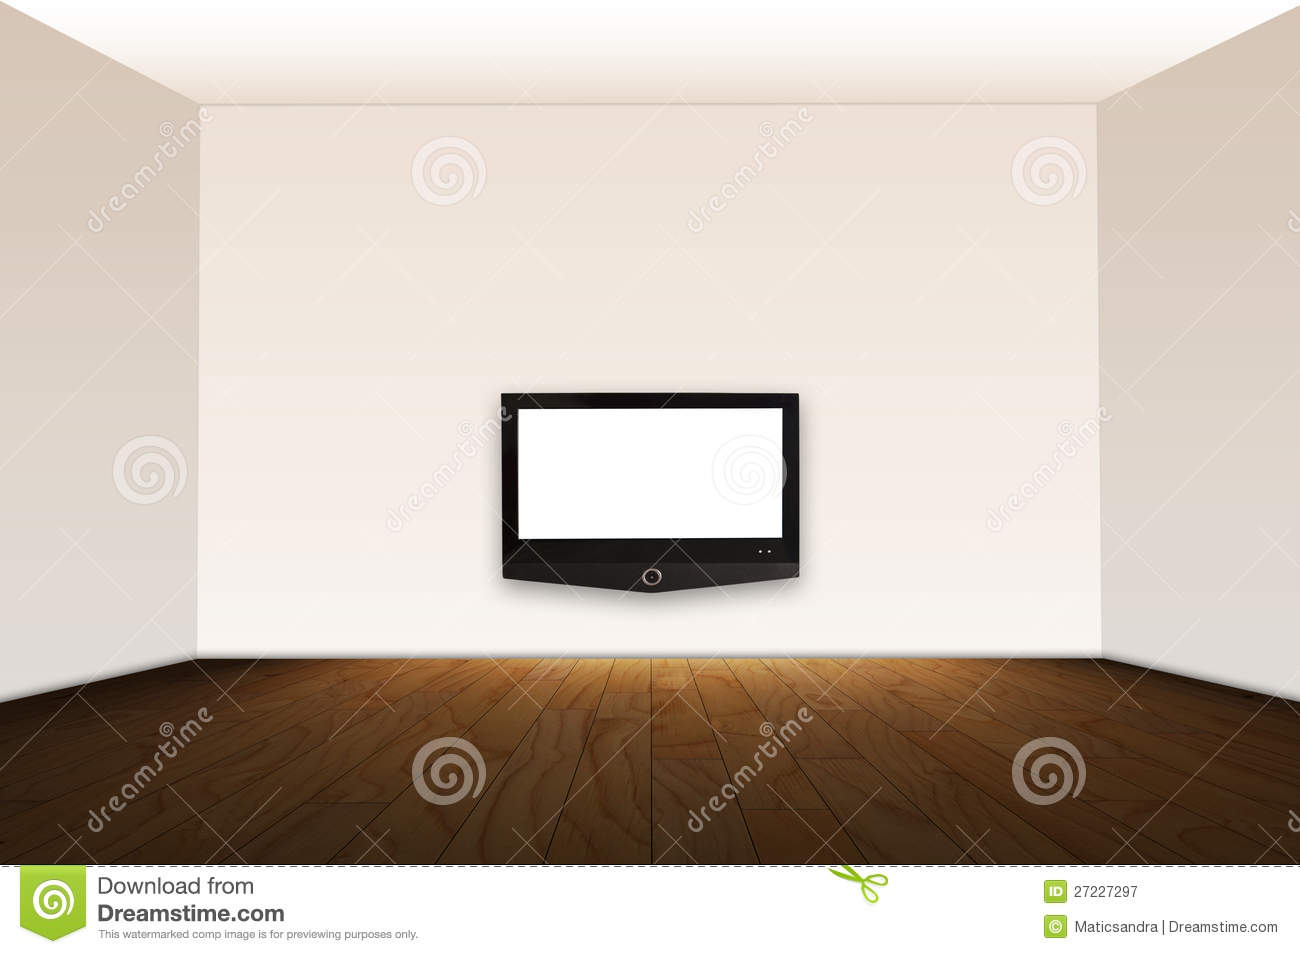 1 038 Hd Tv Photos Free Royalty Free Stock Photos From Dreamstime